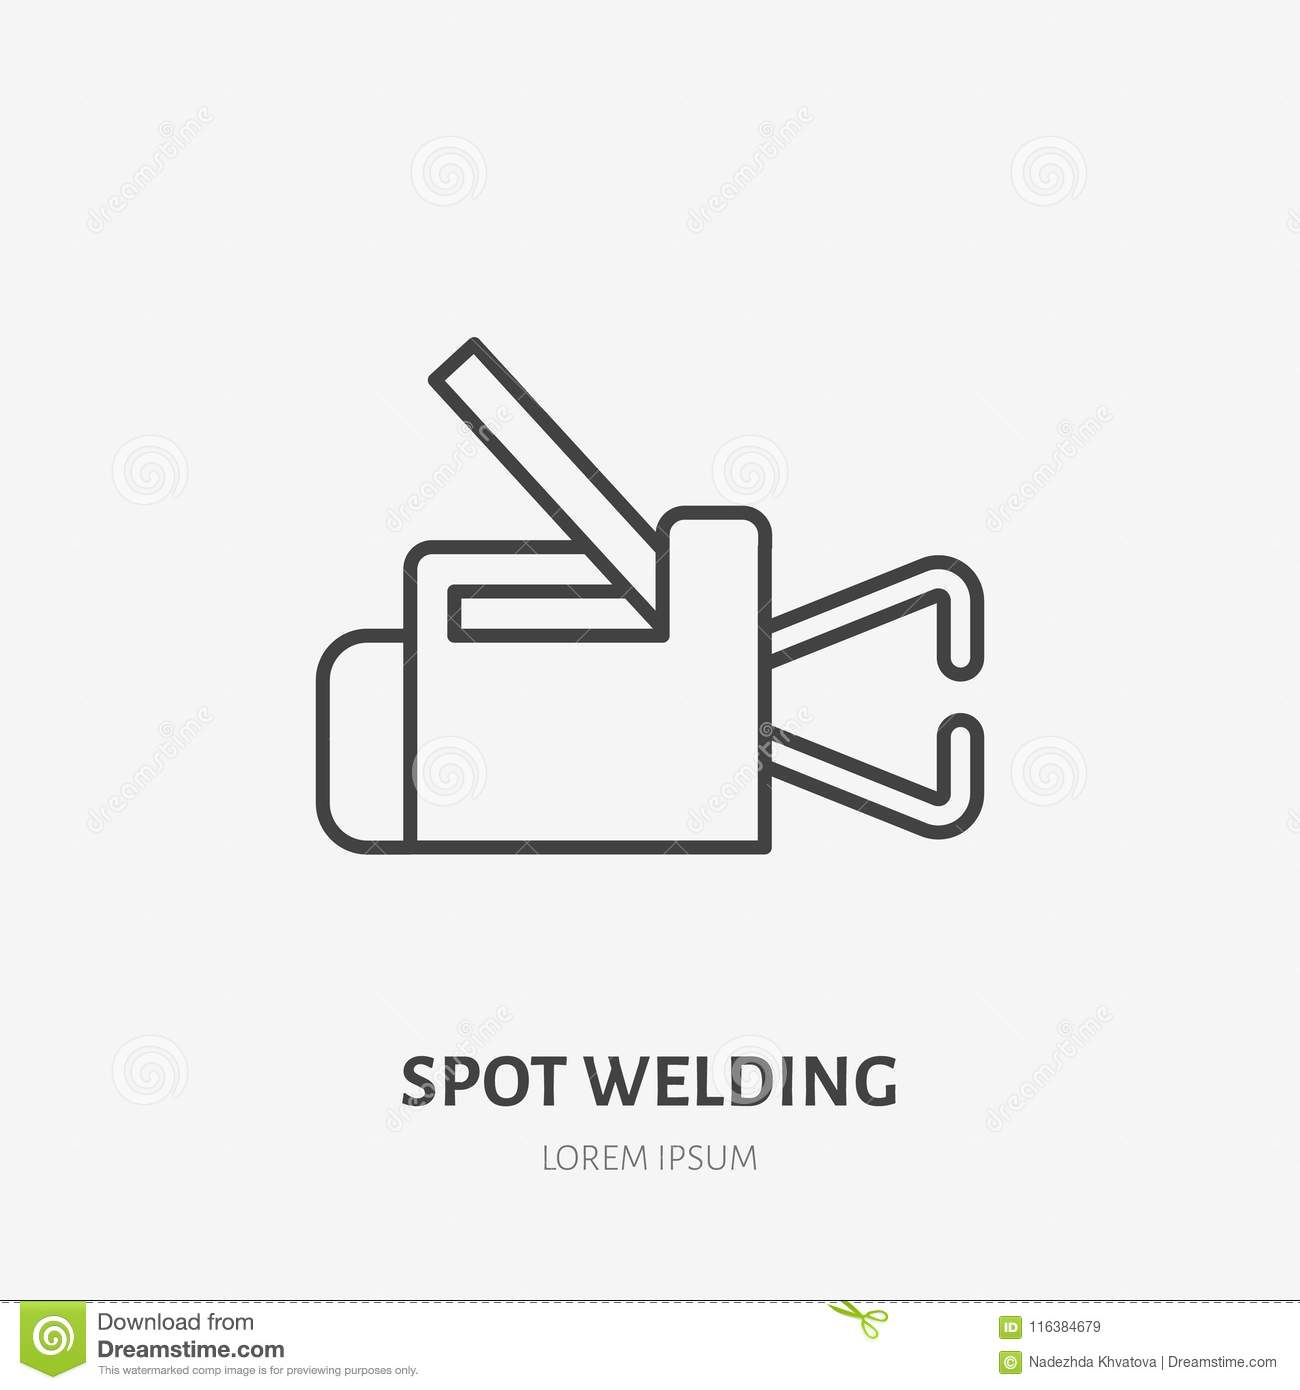 Welder Equipment Diagram Detailed Schematics For Welding Machine Spot Flat Line Icon Metal Works Sign Thin Linear Tool Cart